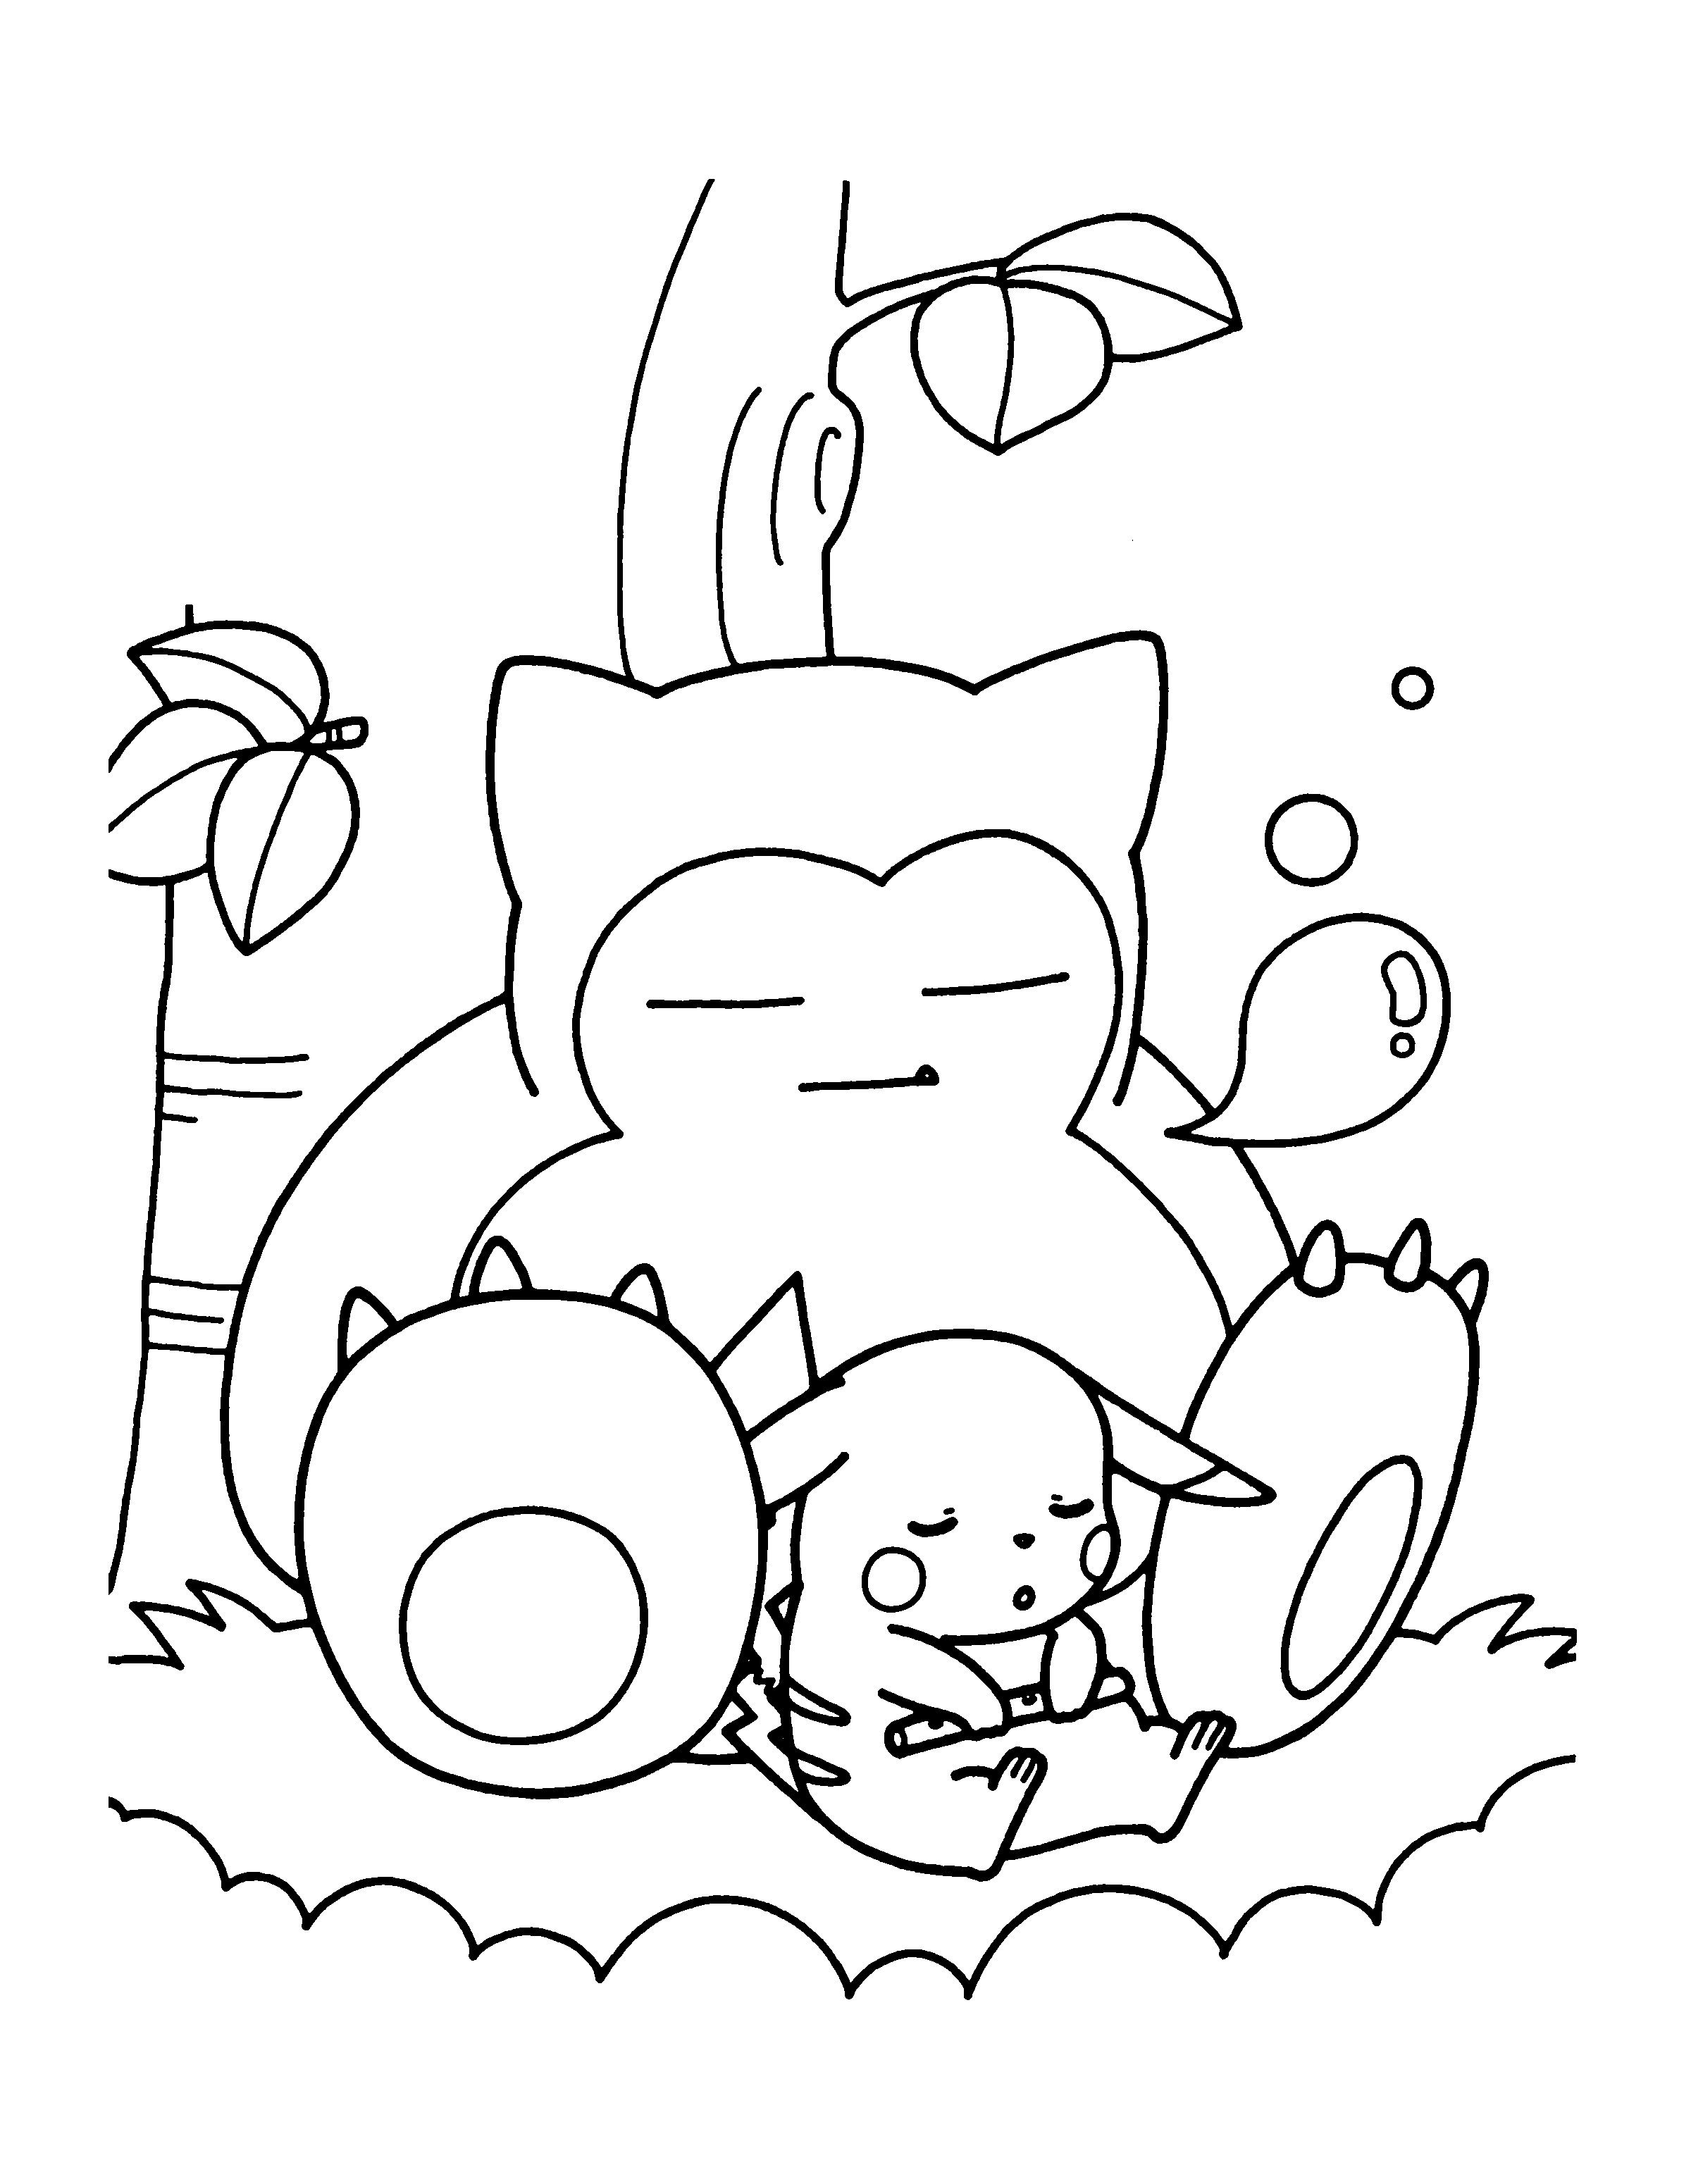 Pokemon Coloring Pages Snorlax With Images Pikachu Coloring Page Pokemon Coloring Pages Pokemon Coloring